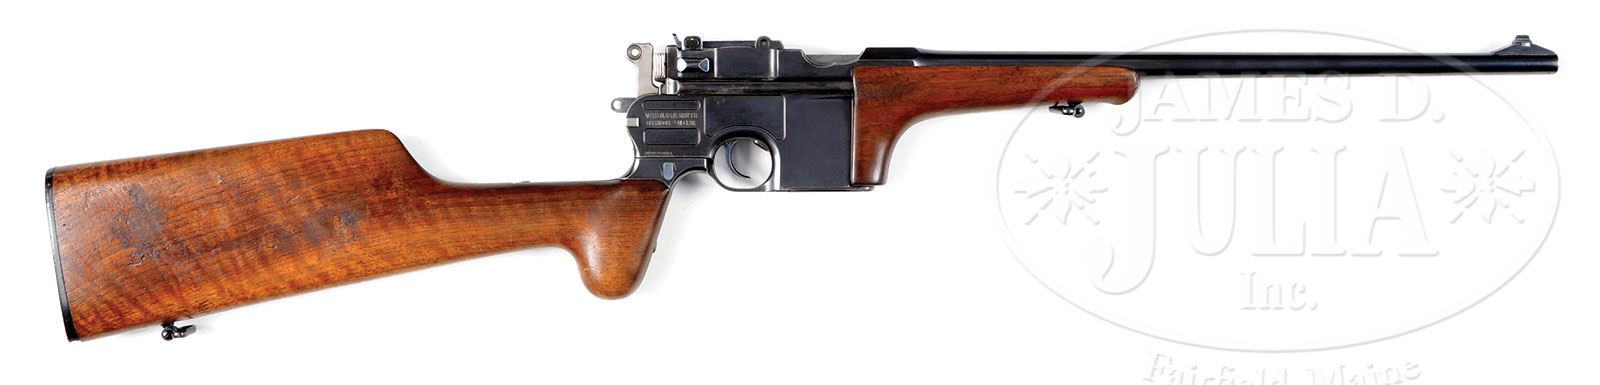 mauser c96 9mm export small ring hammer carbine with internal